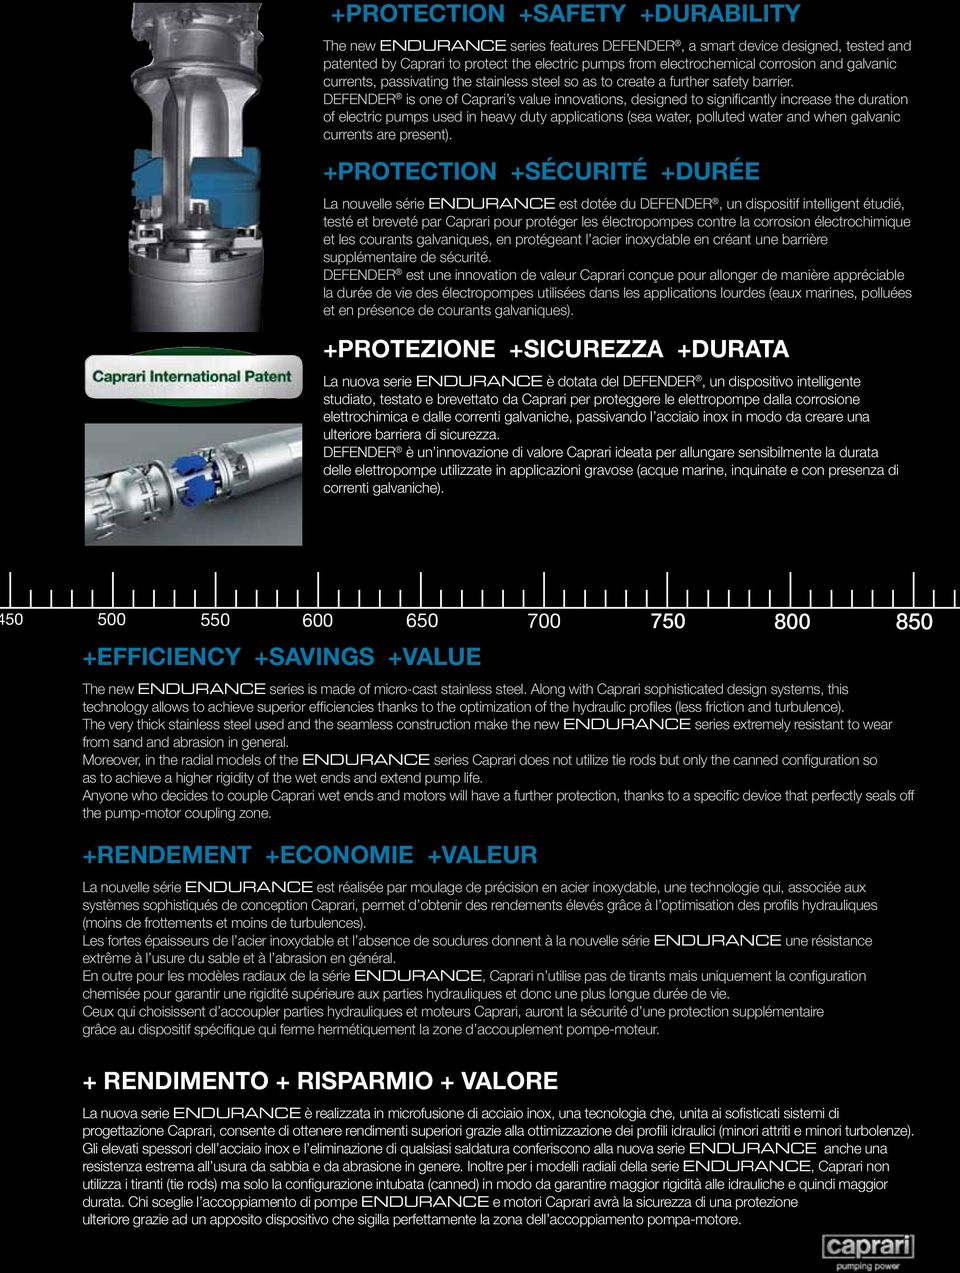 DEFENDER is one of Caprari s value innovations, designed to significantly increase the duration of electric pumps used in heavy duty applications (sea water, polluted water and when galvanic currents